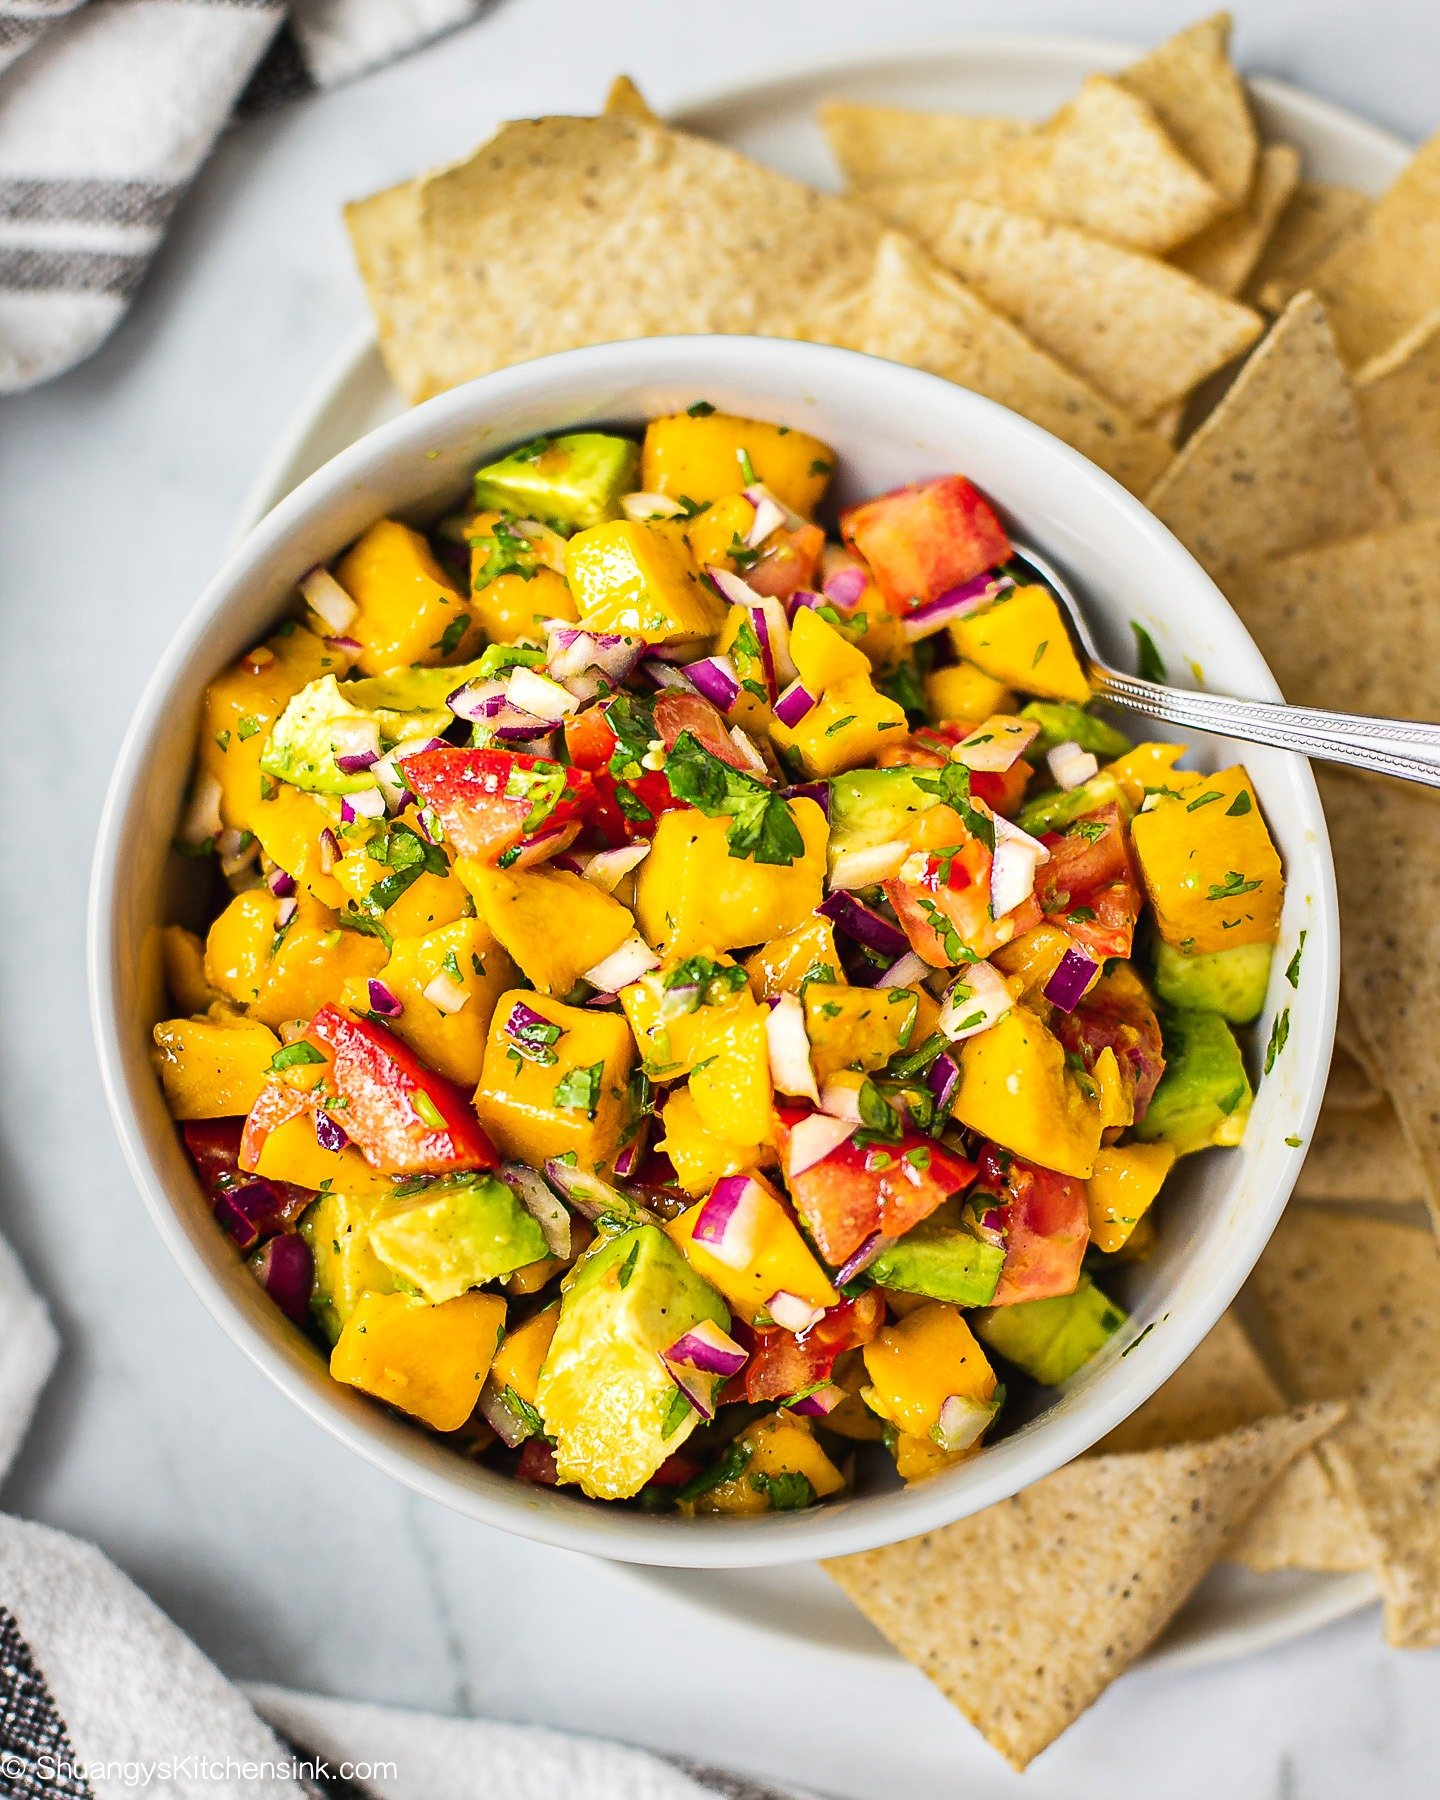 A bowl of fresh ingredients for mango avocado salsa that include fresh mango, avocado, red onion, tomatoes, diced jalapeno, and cilantro. There are chips on the side.